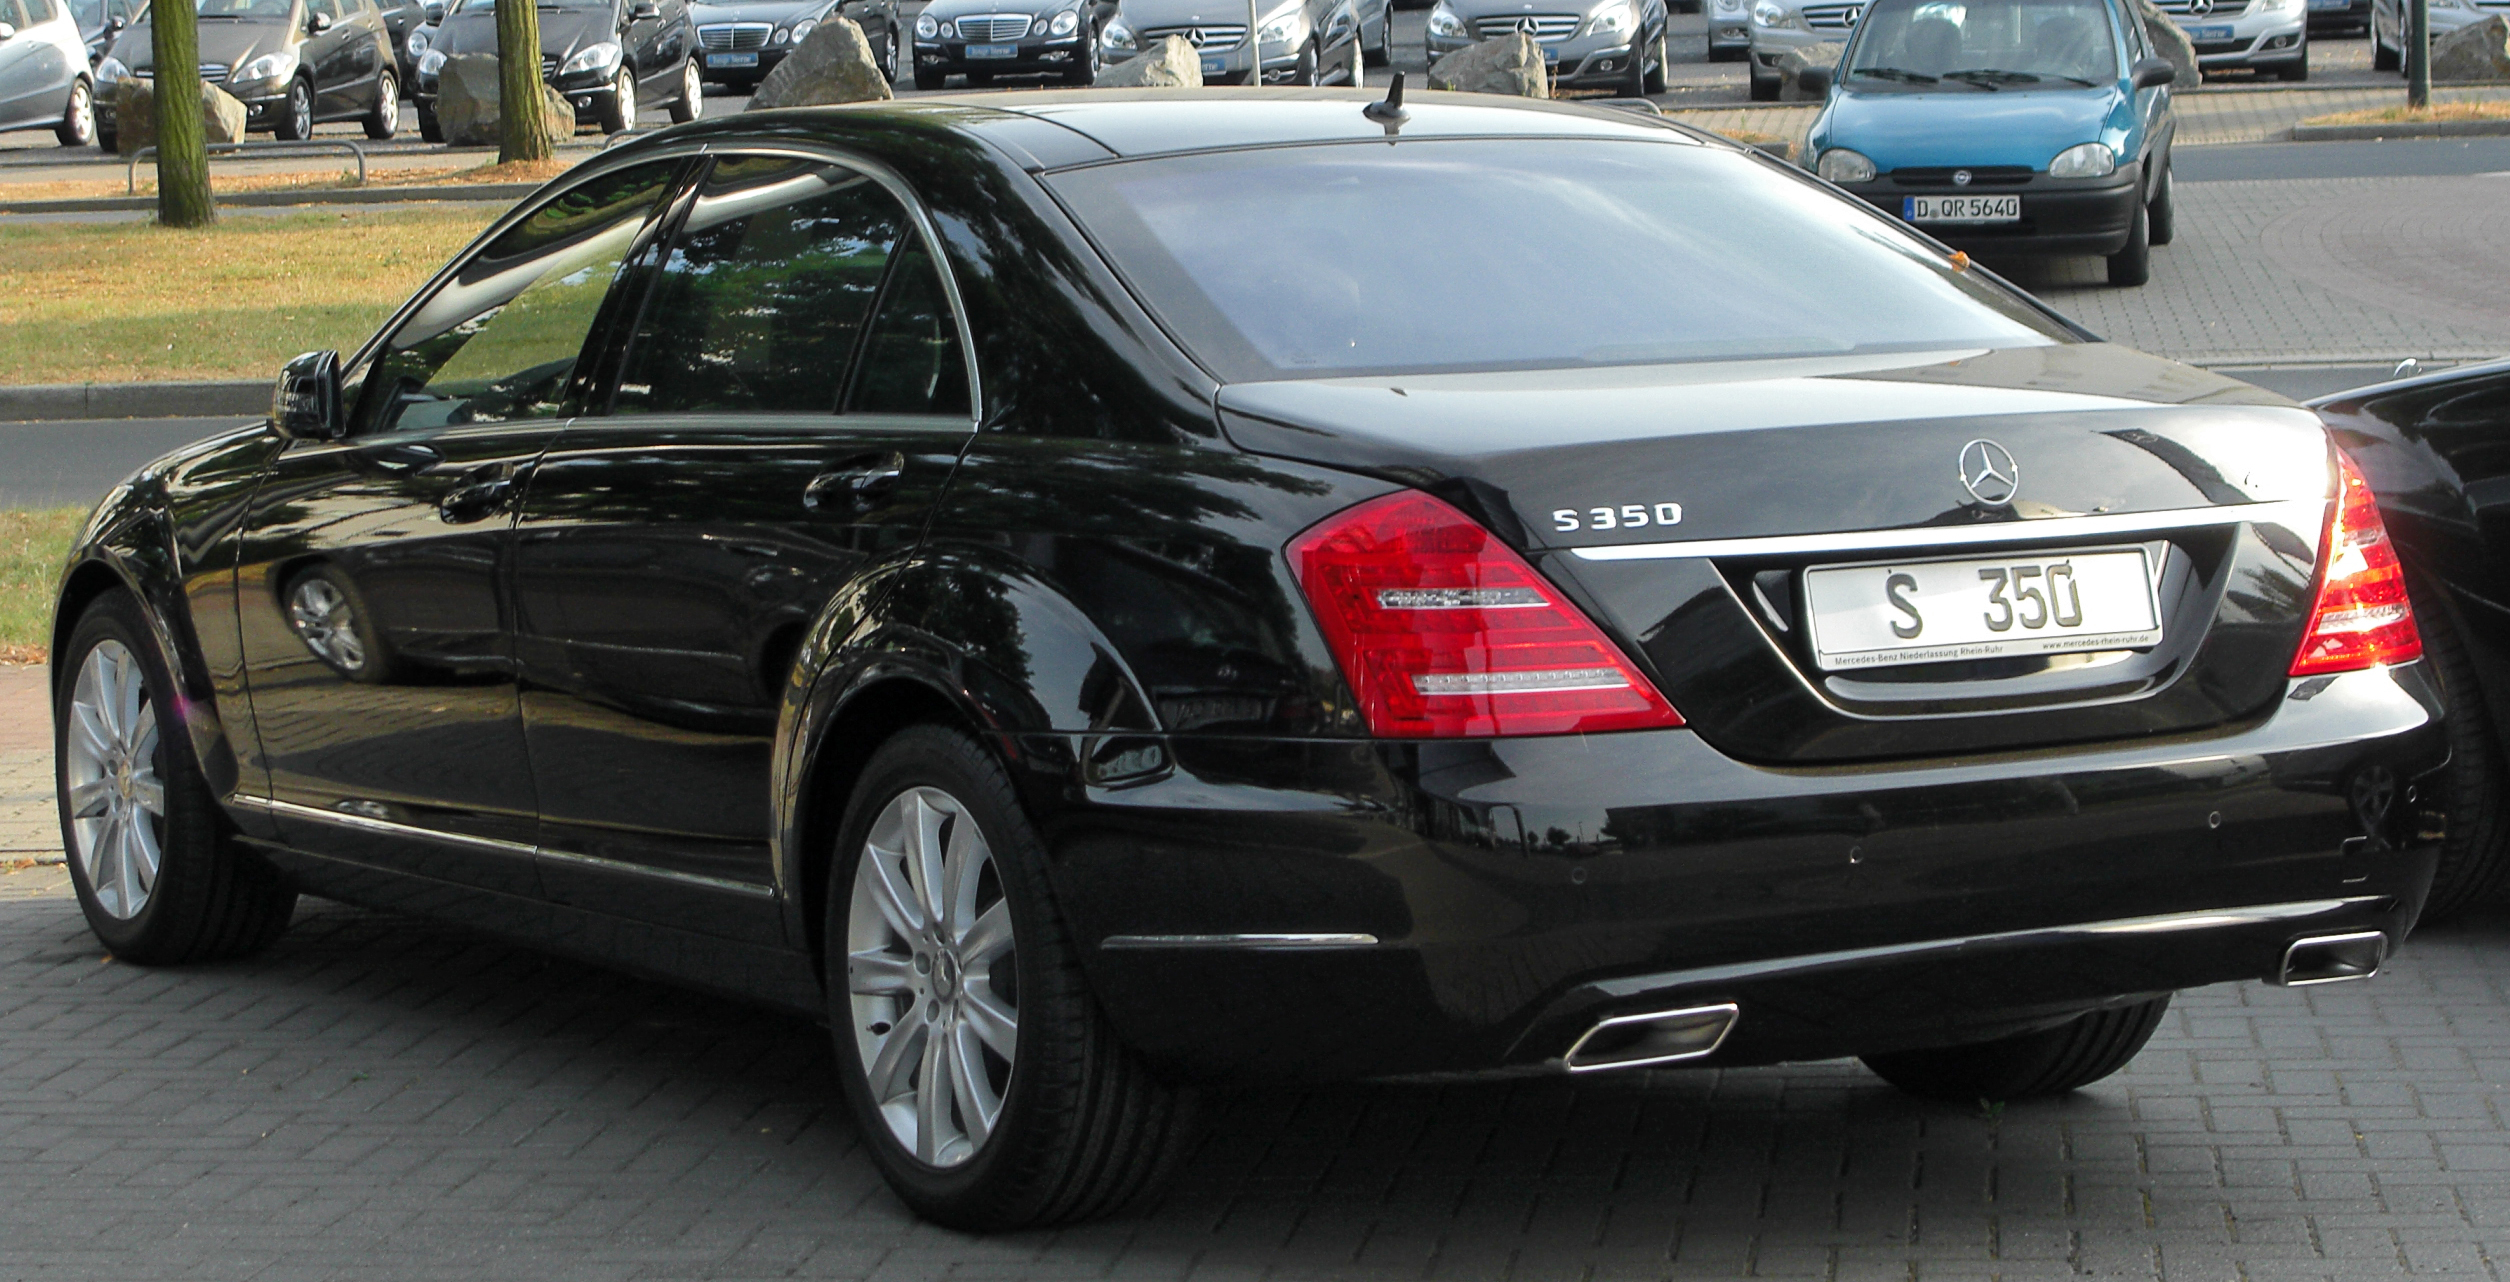 Description Mercedes S 350 4matic L V221 Facelift Rear